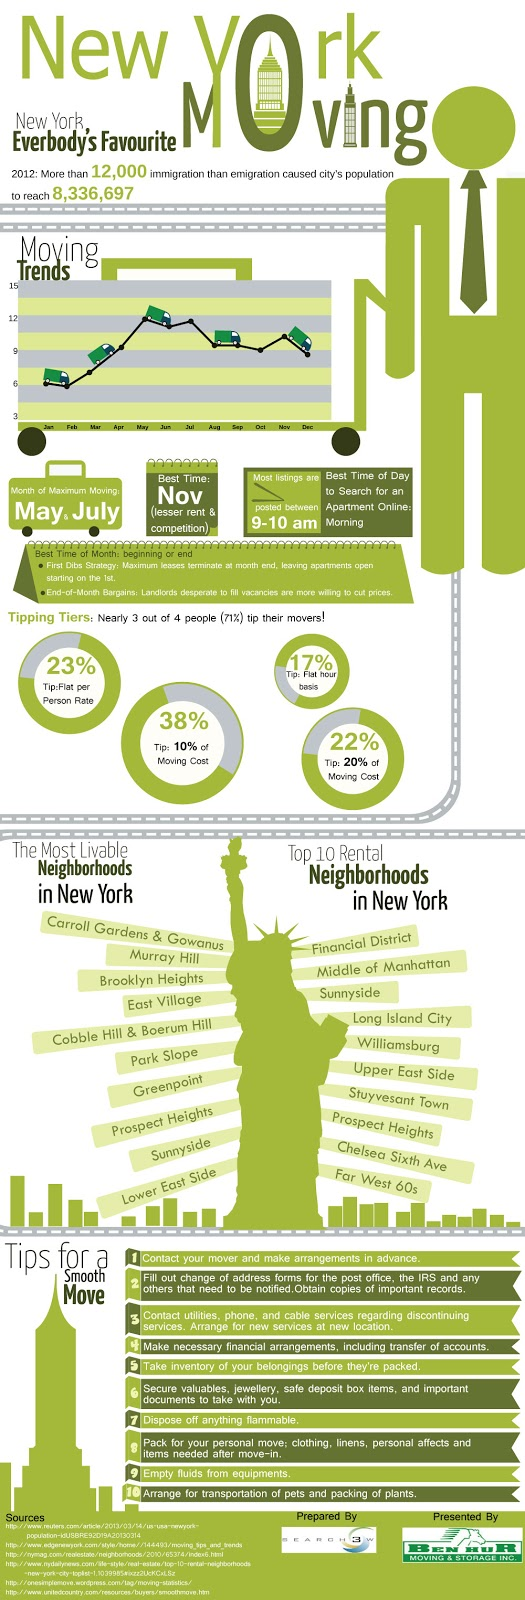 14. Most Livable Neighborhoods in NYC